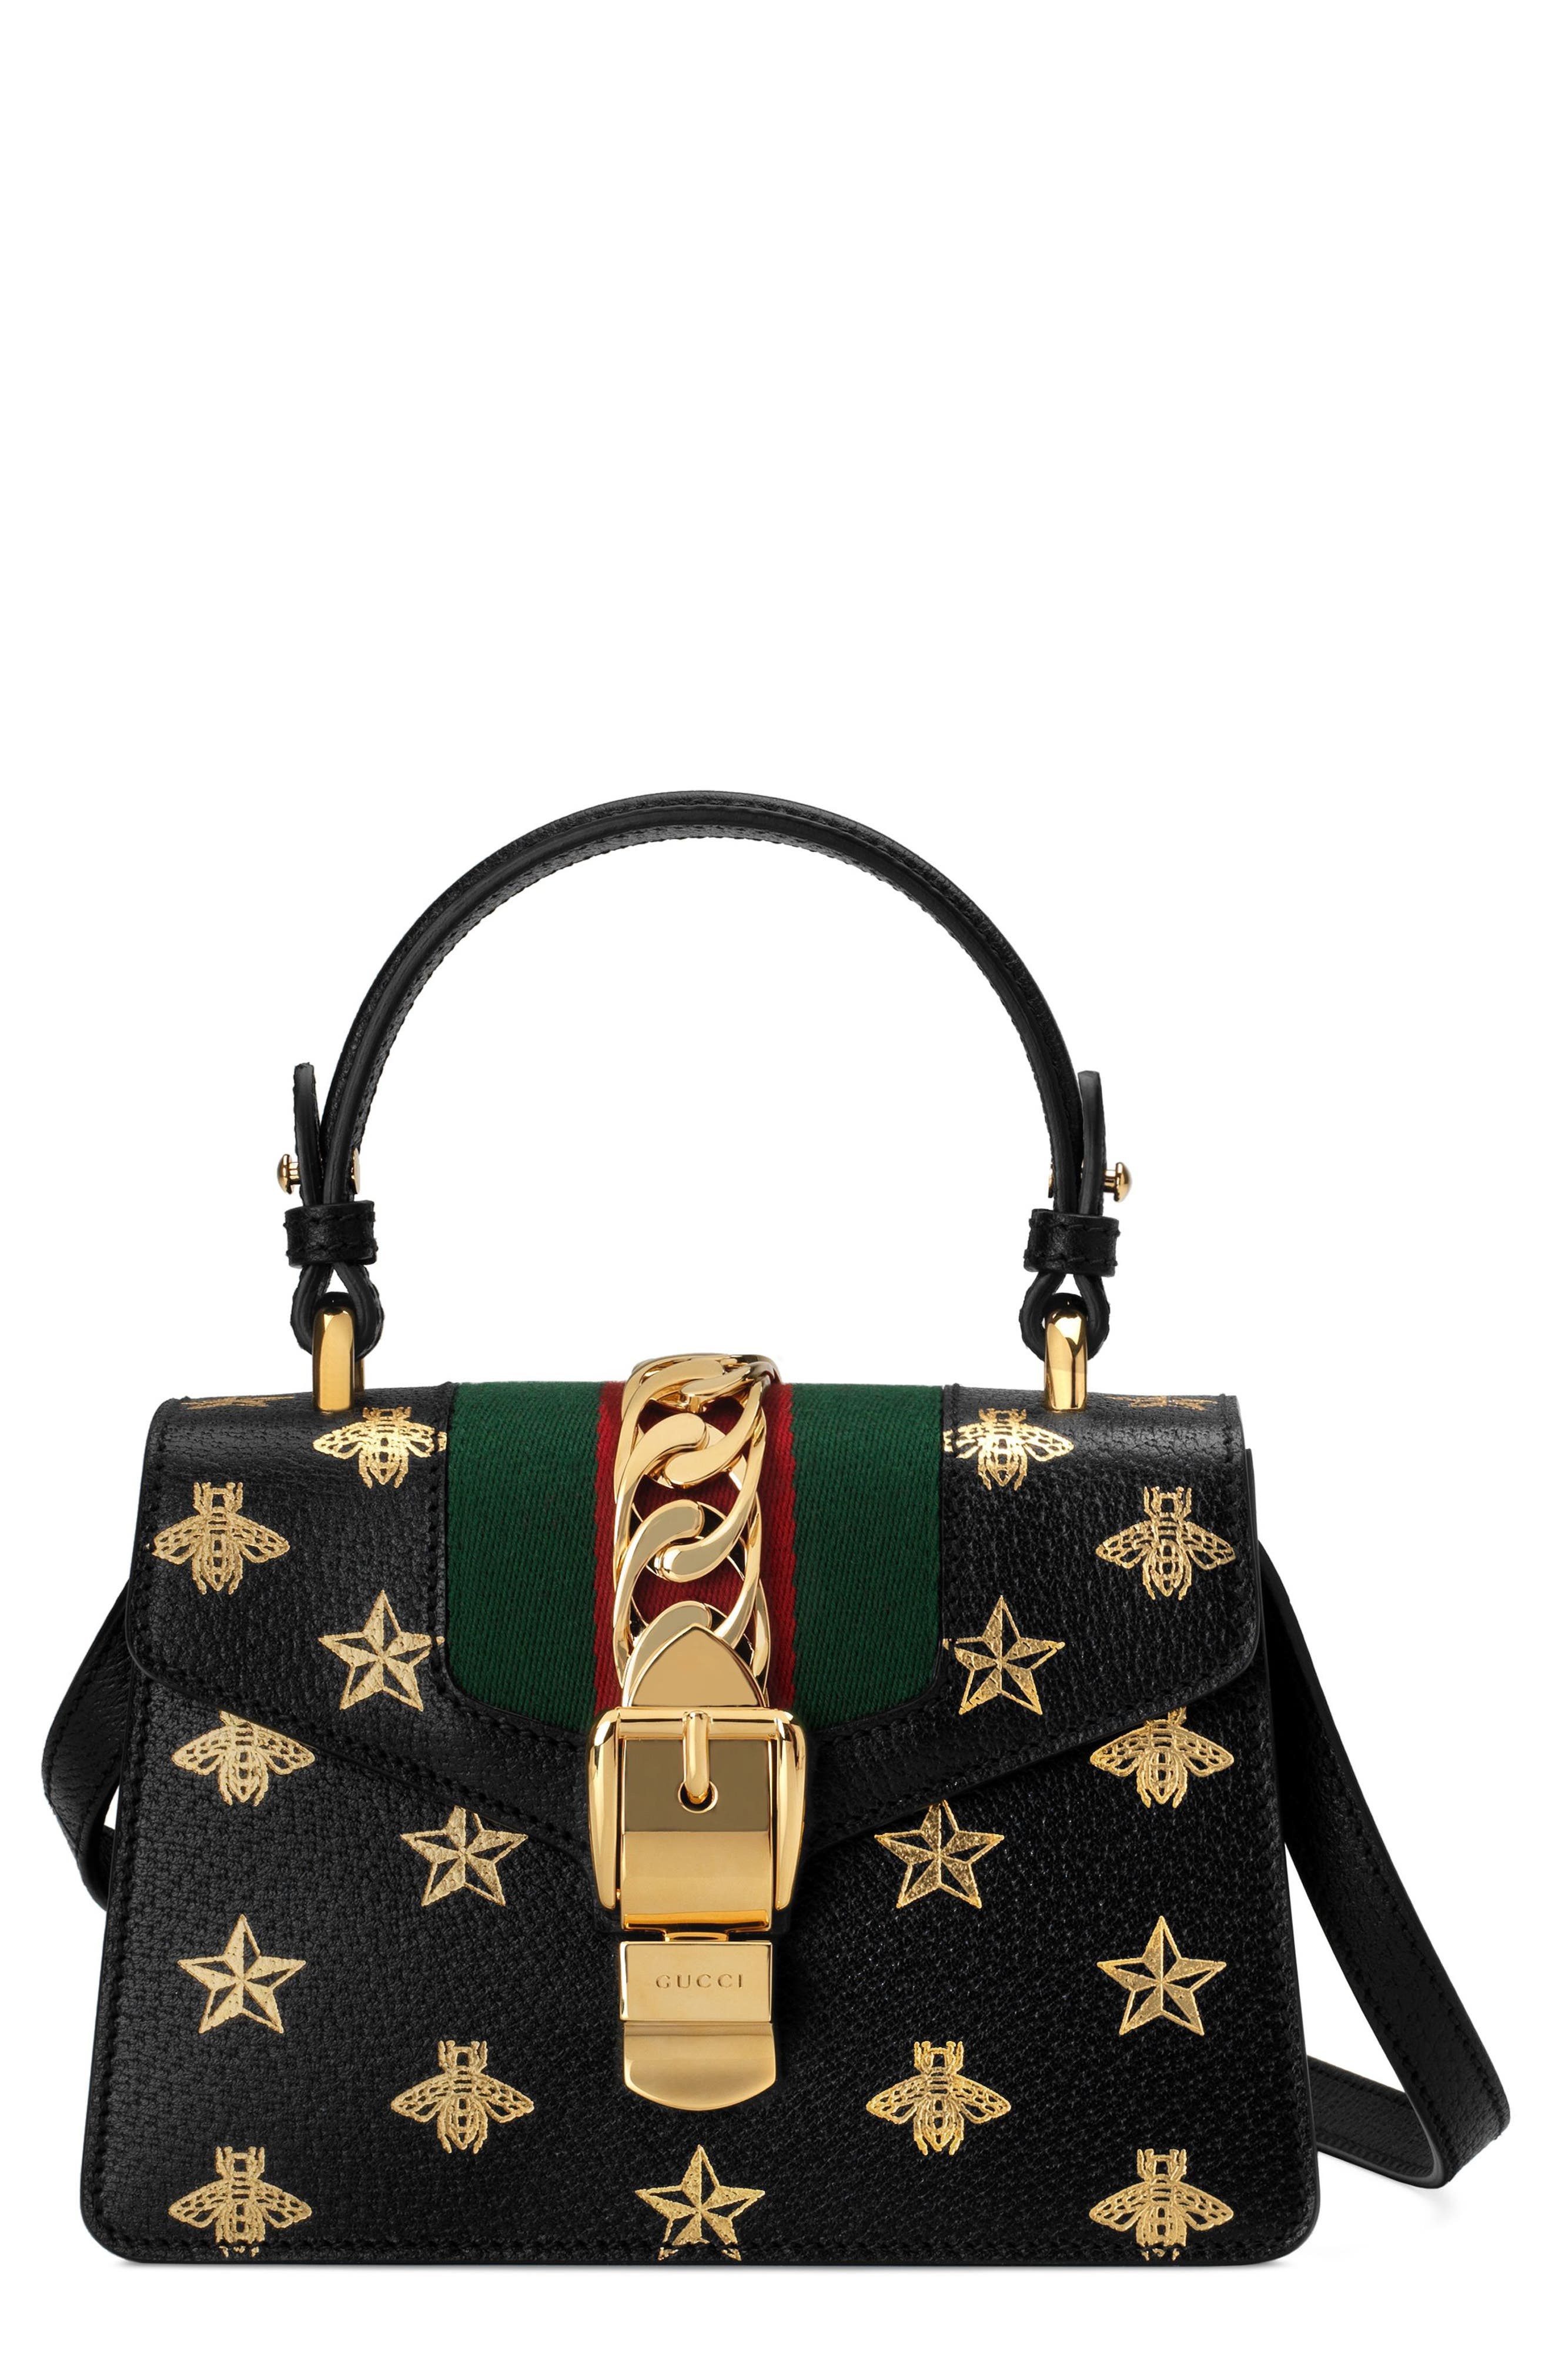 Small Sylvie Top Handle Leather Shoulder Bag,                         Main,                         color, NERO/ ORO/ VERT/ RED